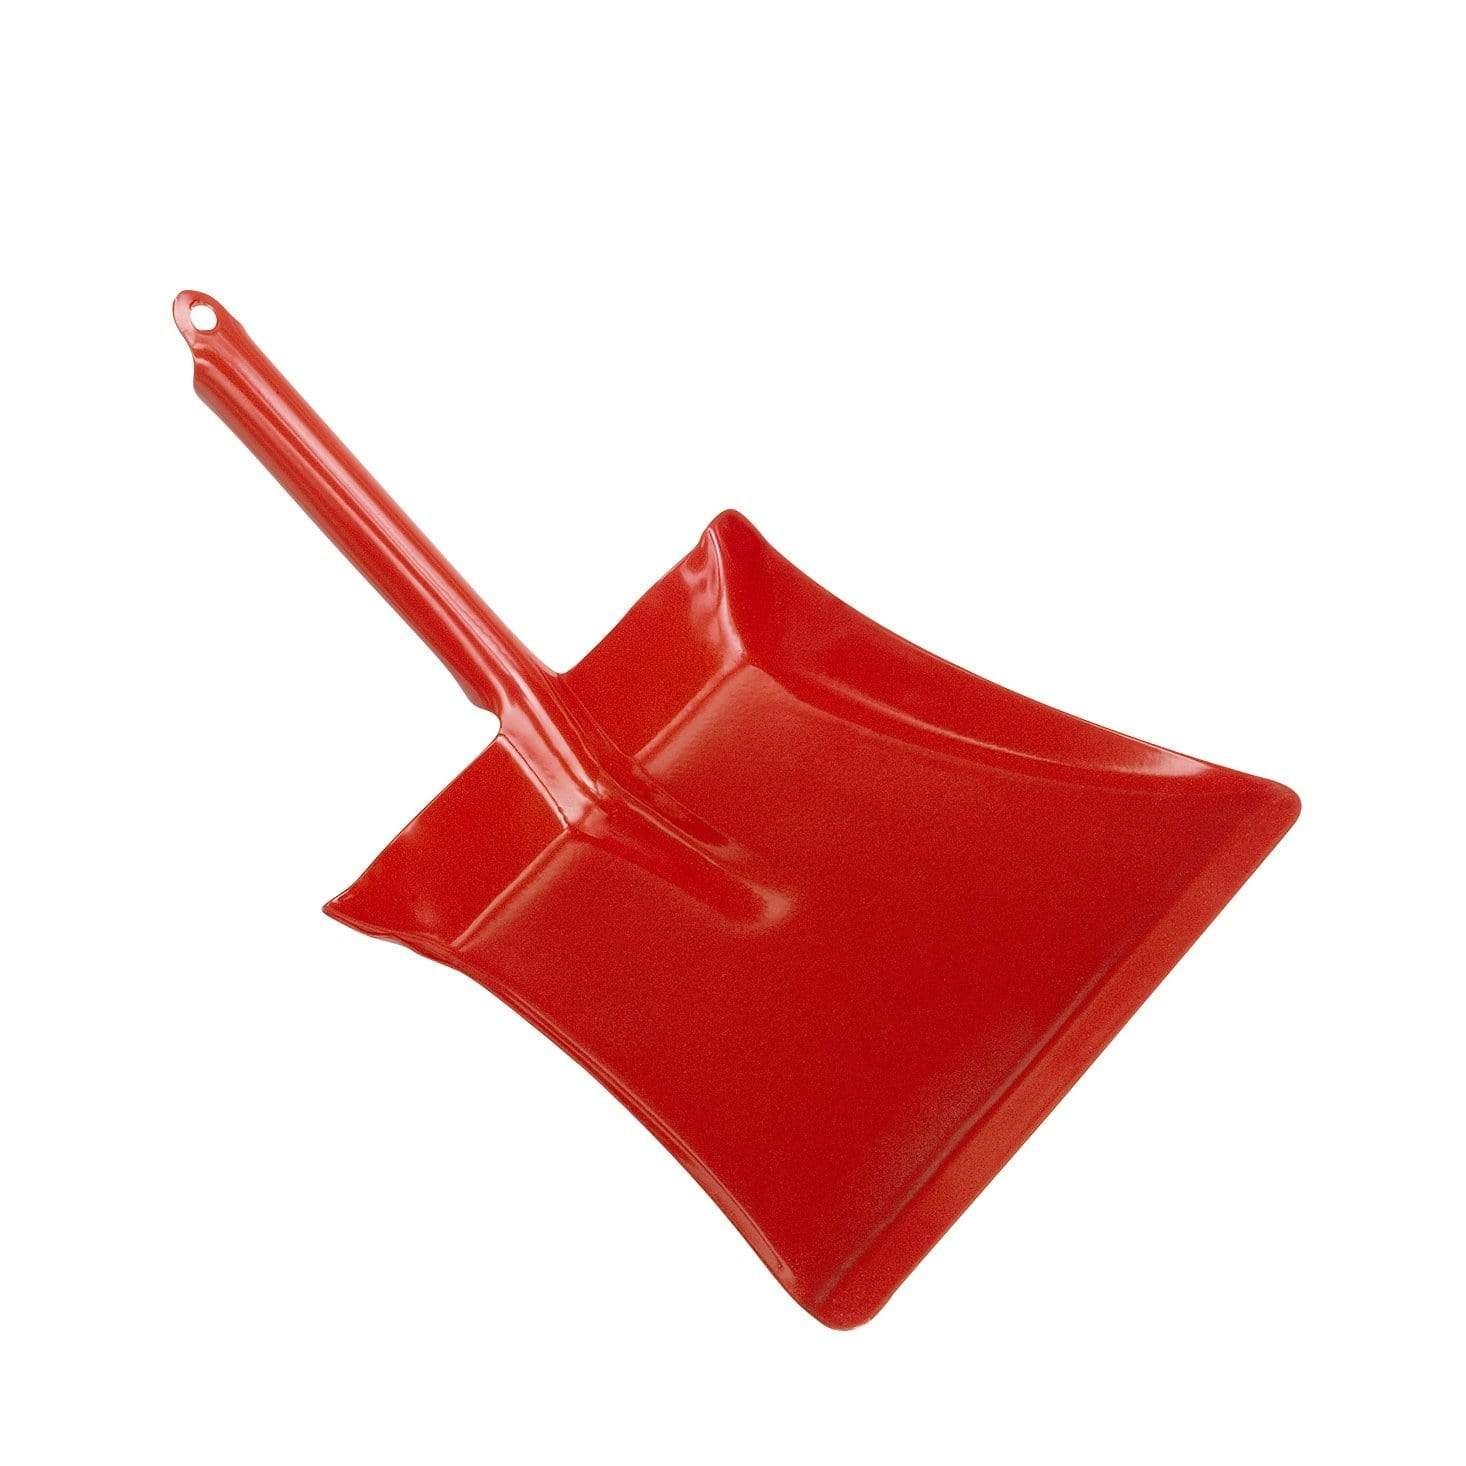 Redecker Children's Dust Pan